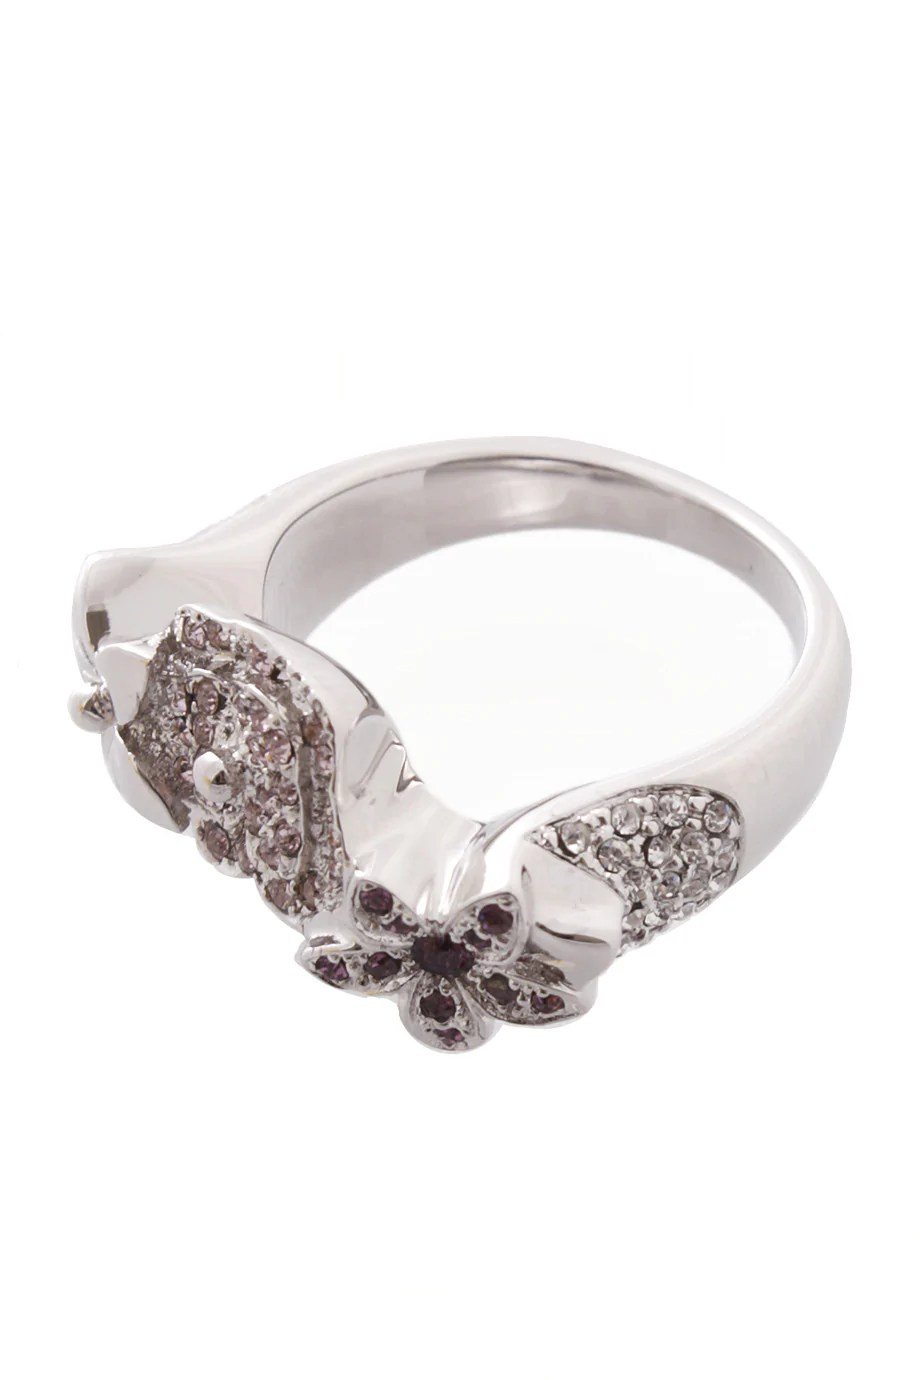 DIOR EXOTIC Silver Flower Crystal Ring – Pret-A-Beaute